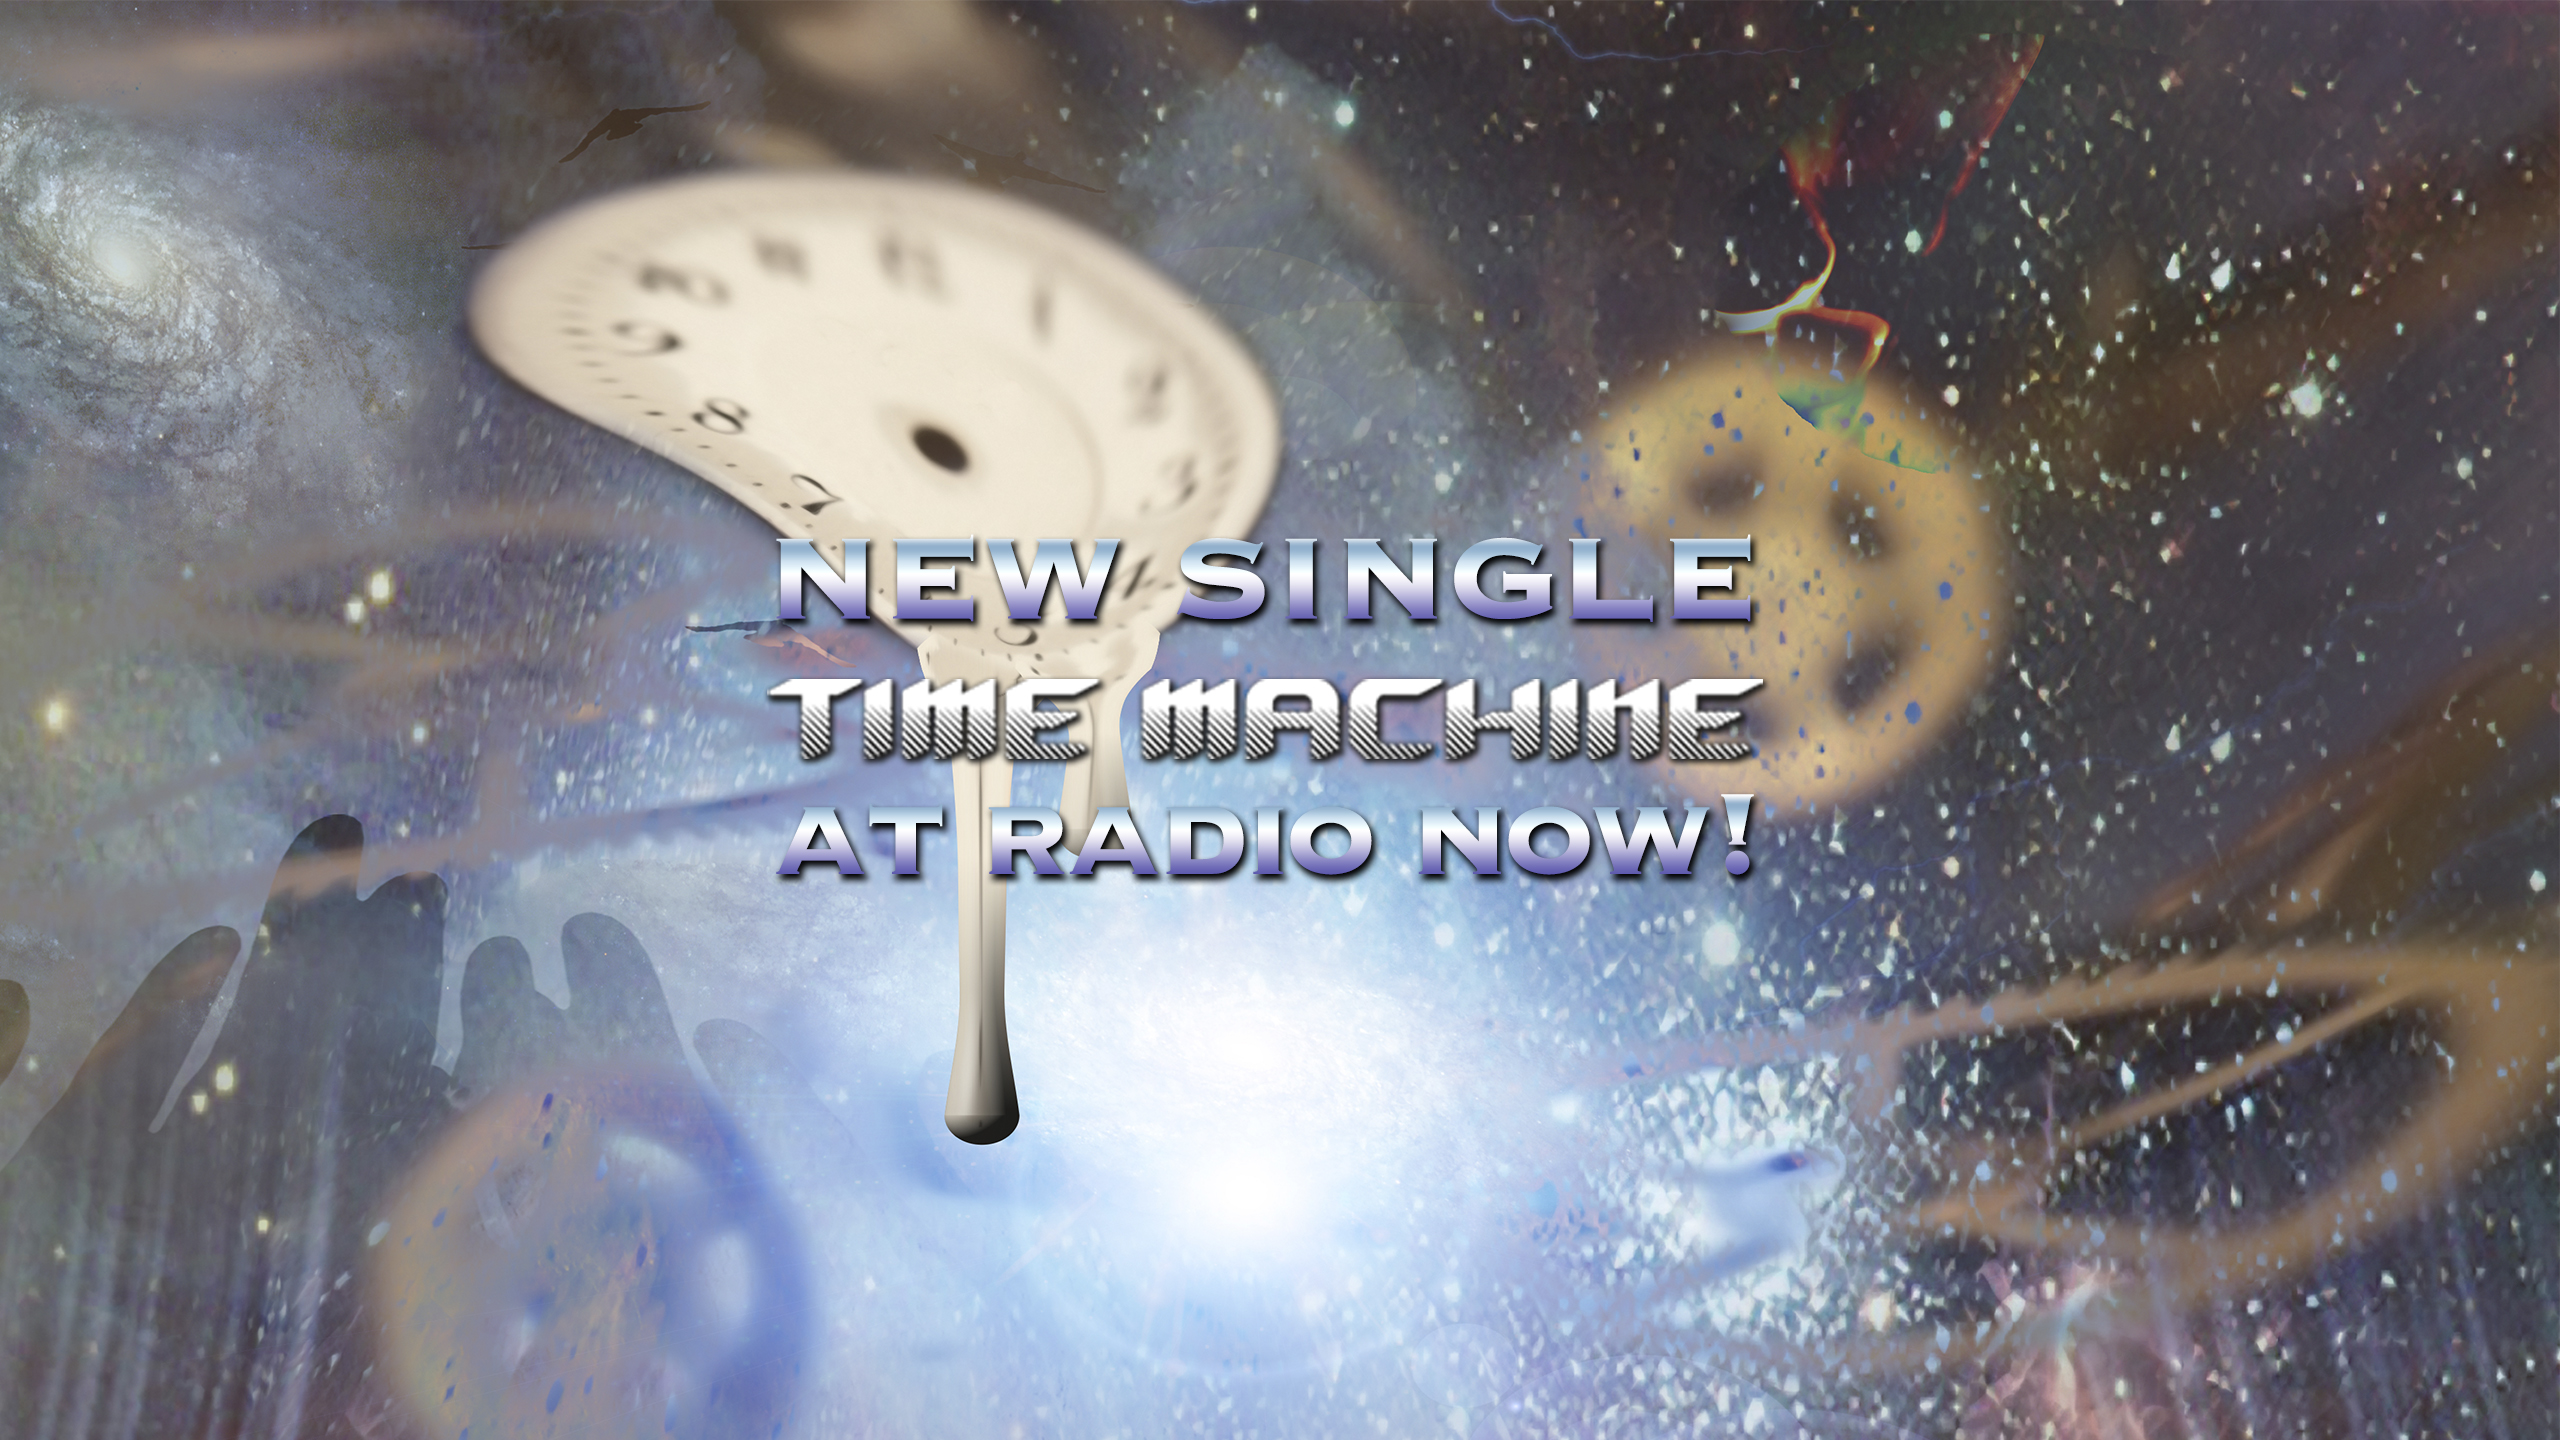 "New Single, ""Time Machine"" is now at Radio!  Call and Request it now!"